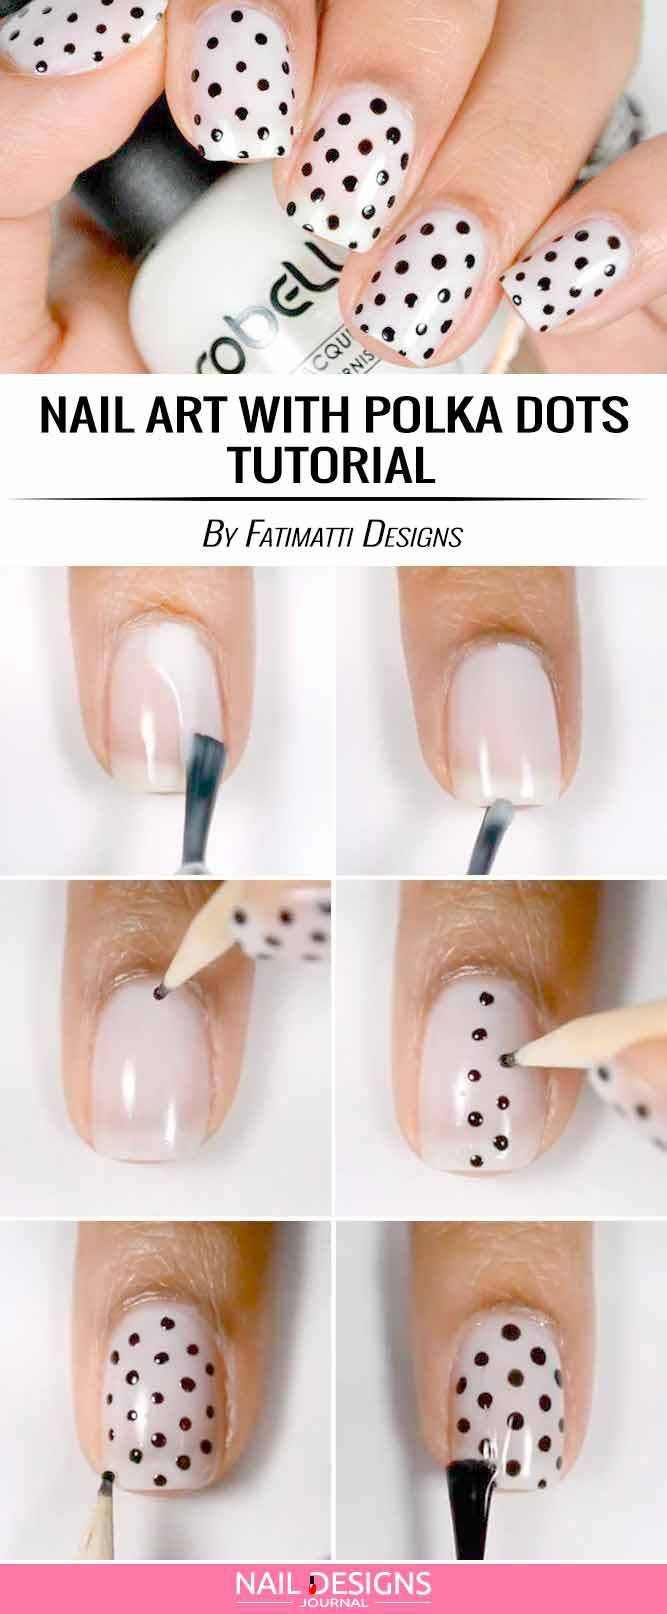 15 Super Easy Nail Designs Diy Tutorials 2 Nail Art With Polka